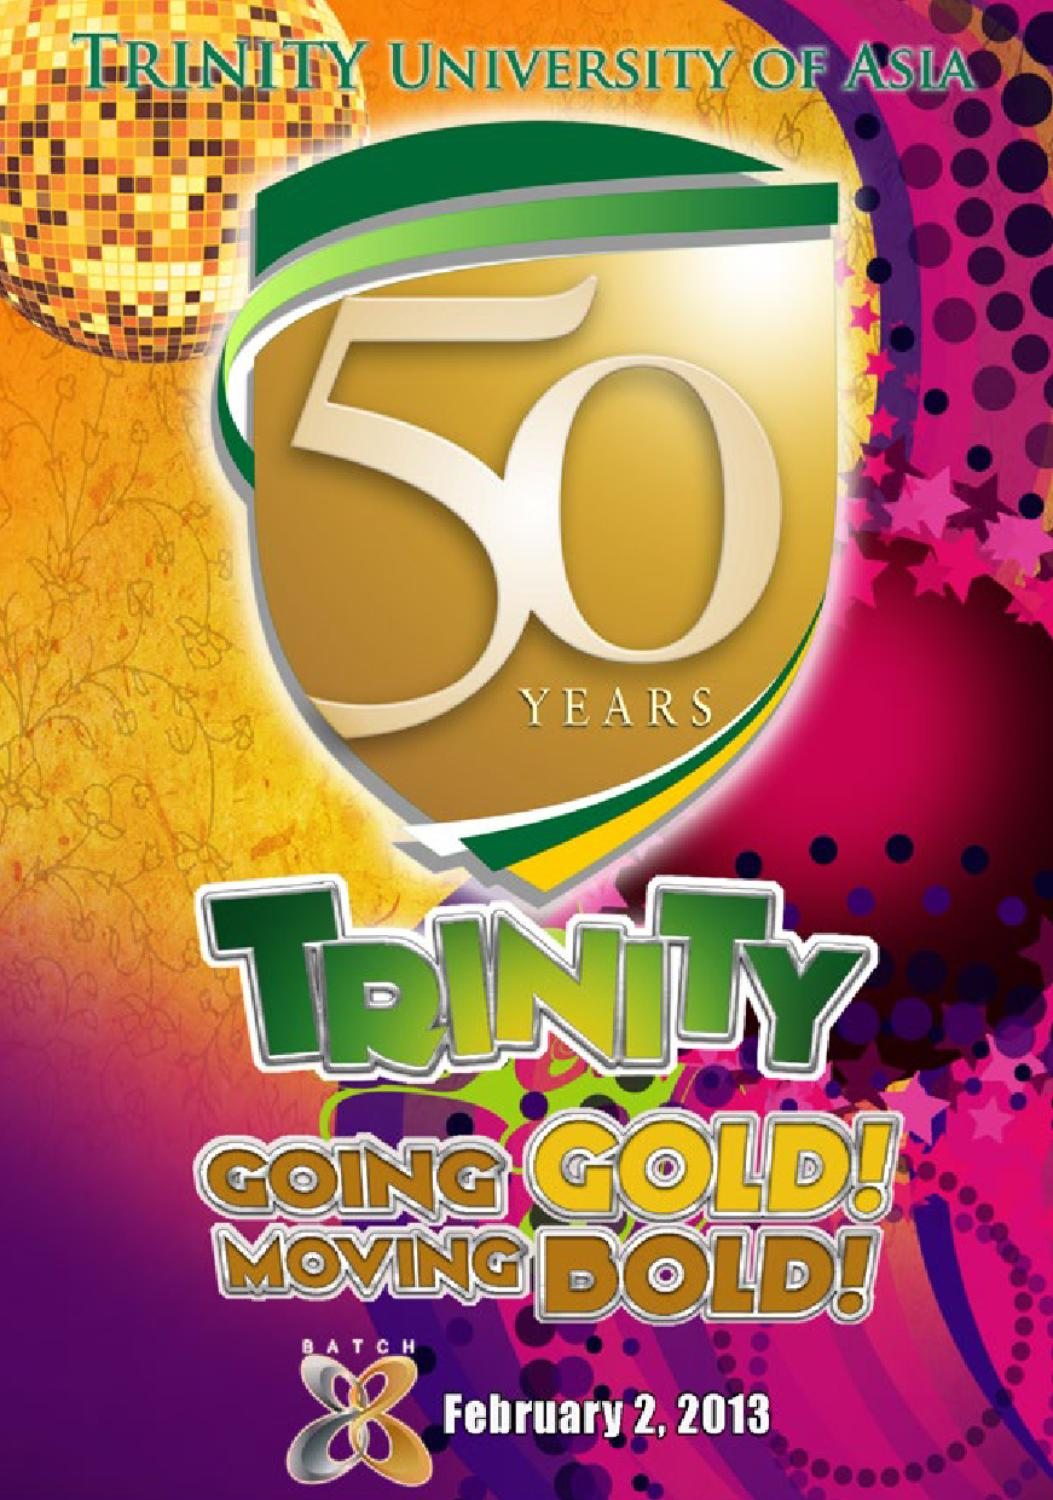 Shirt design for alumni homecoming - Trinity Hs 50th Grand Homecoming Program Book By Christian Uybengkee Issuu